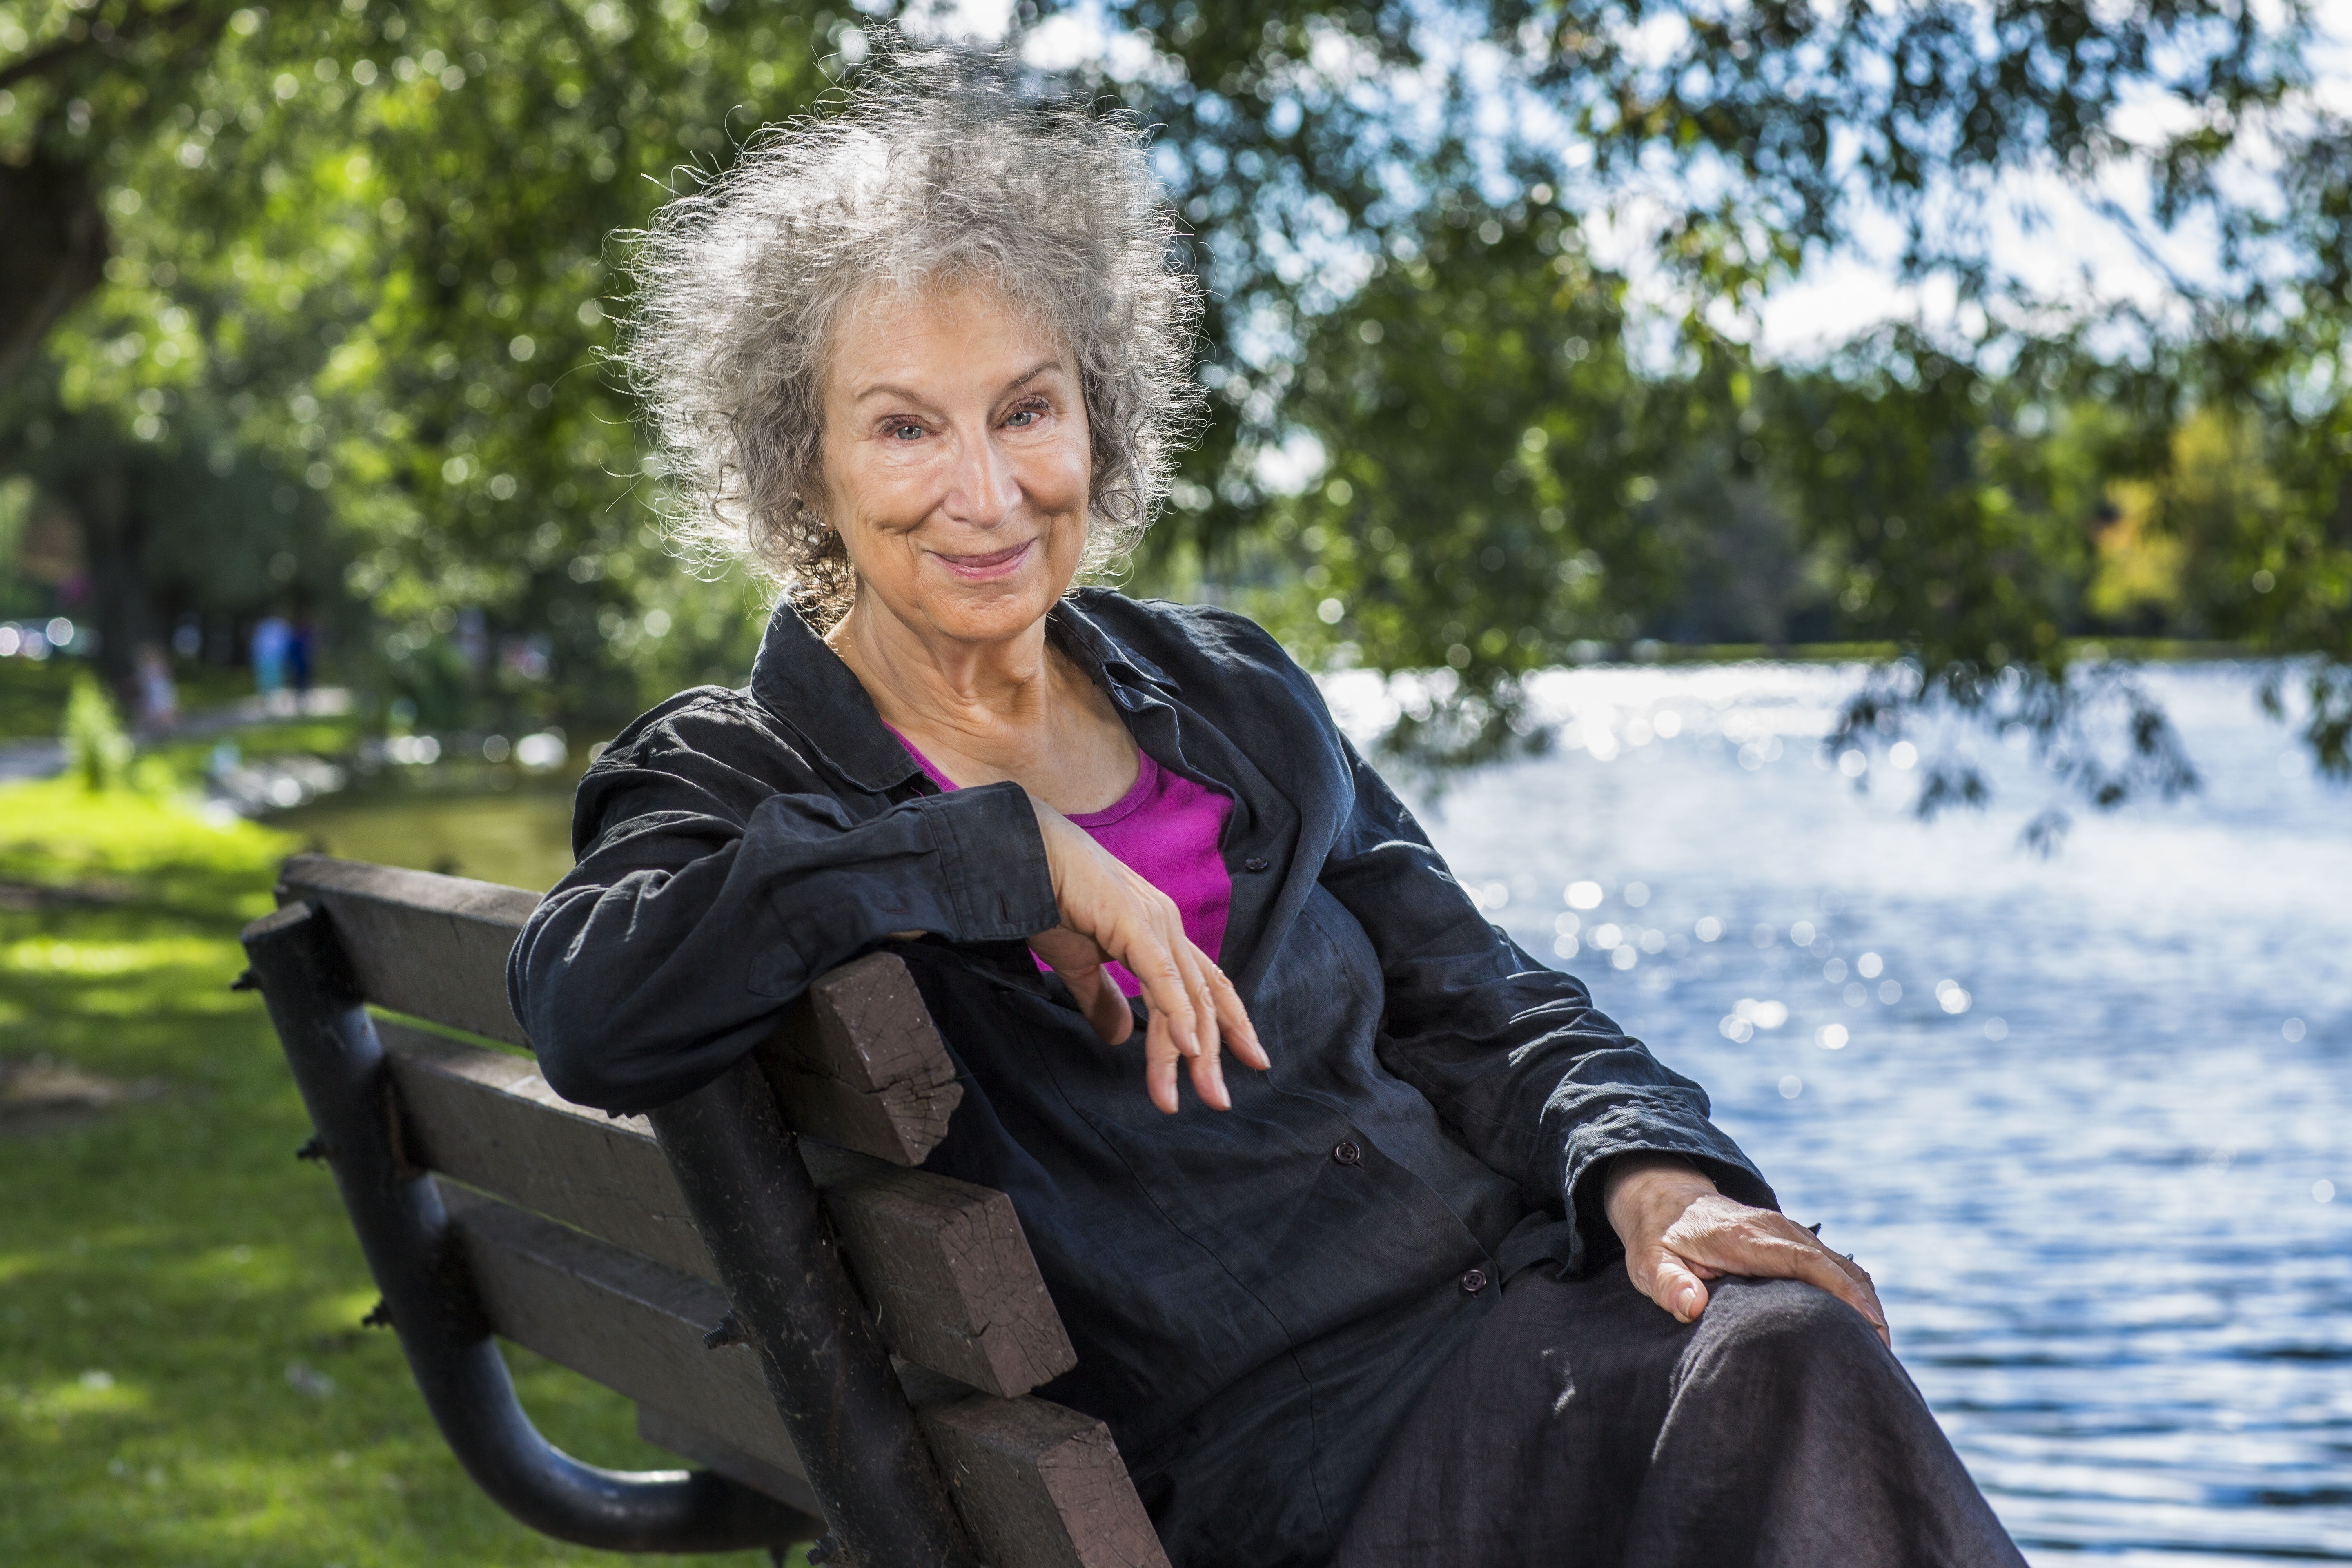 Author Margaret Atwood photo by Liam Sharp